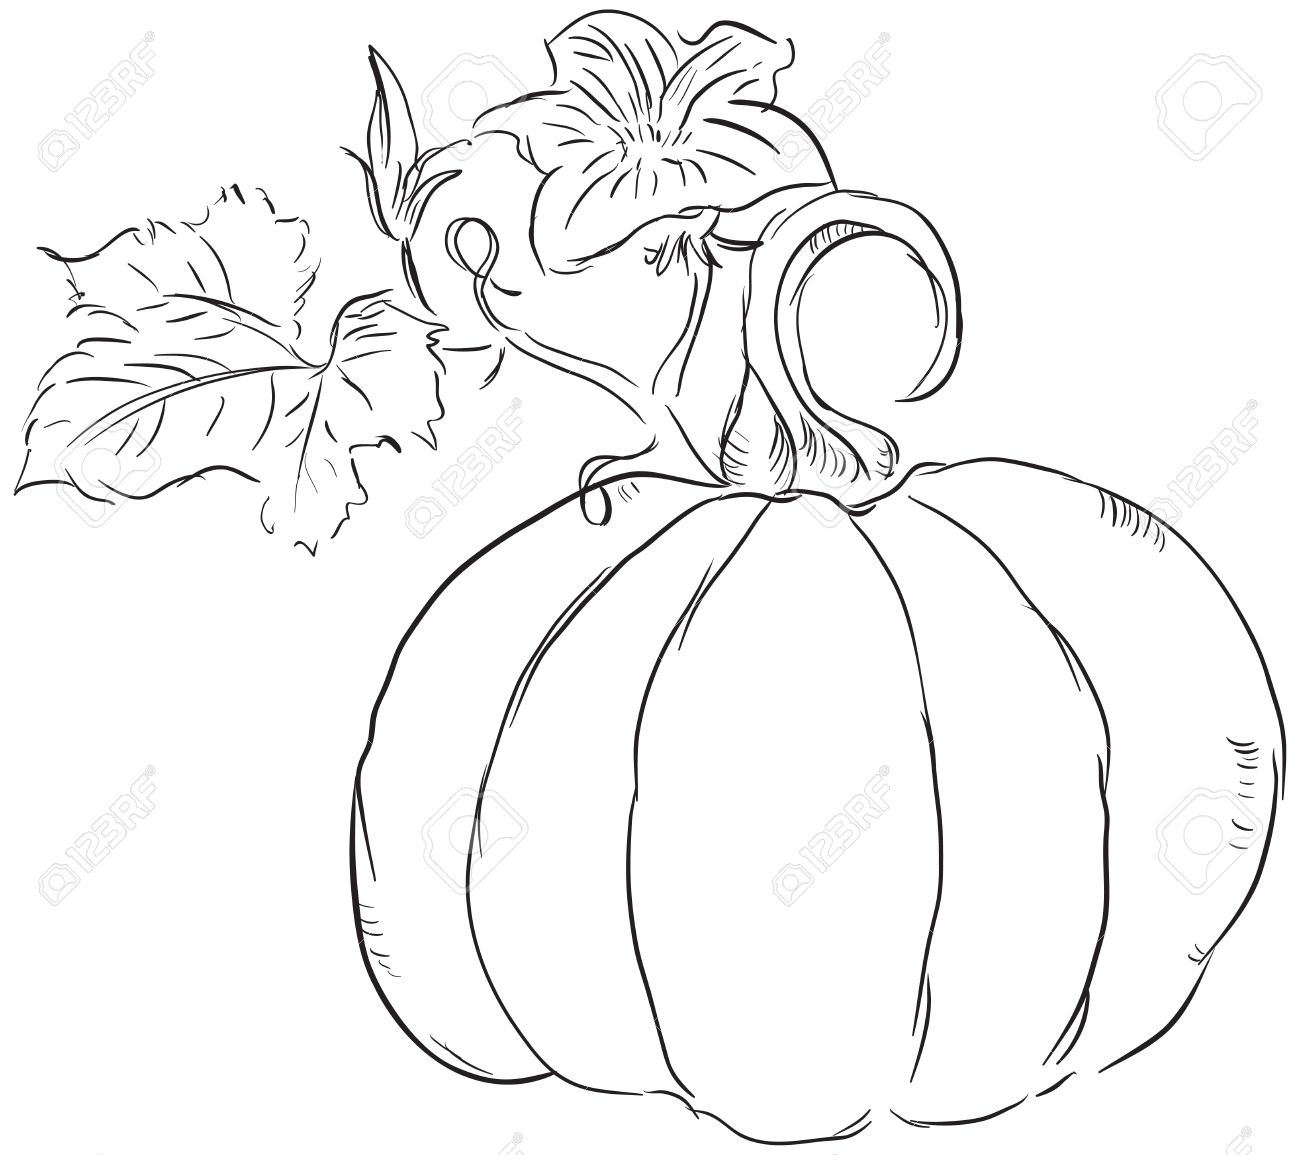 1300x1155 Drawn Pumpkin Leaf Free Collection Download And Share Drawn